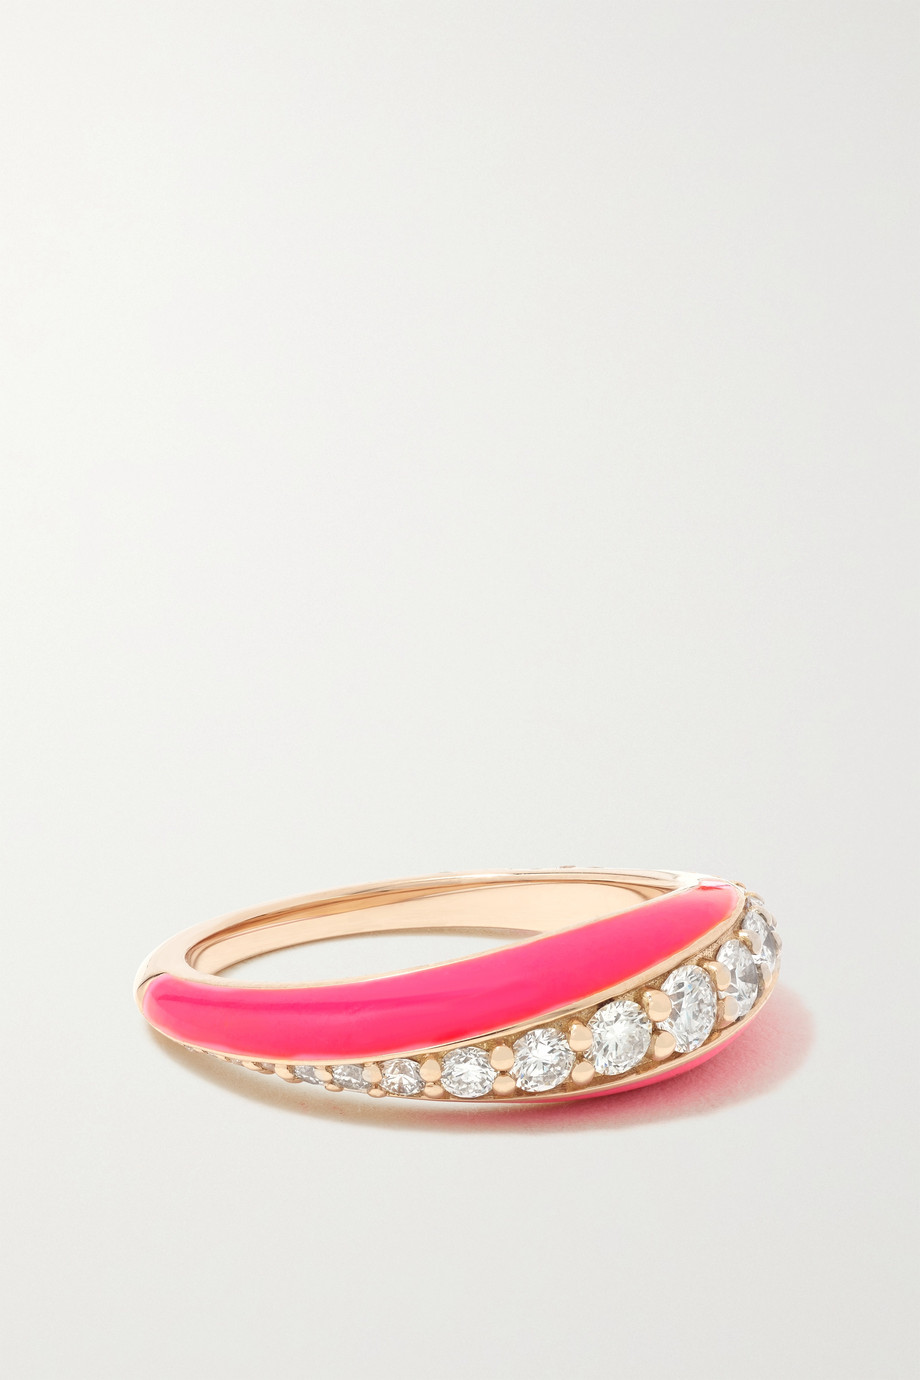 Melissa Kaye Remi 18-karat rose gold, diamond and enamel ring